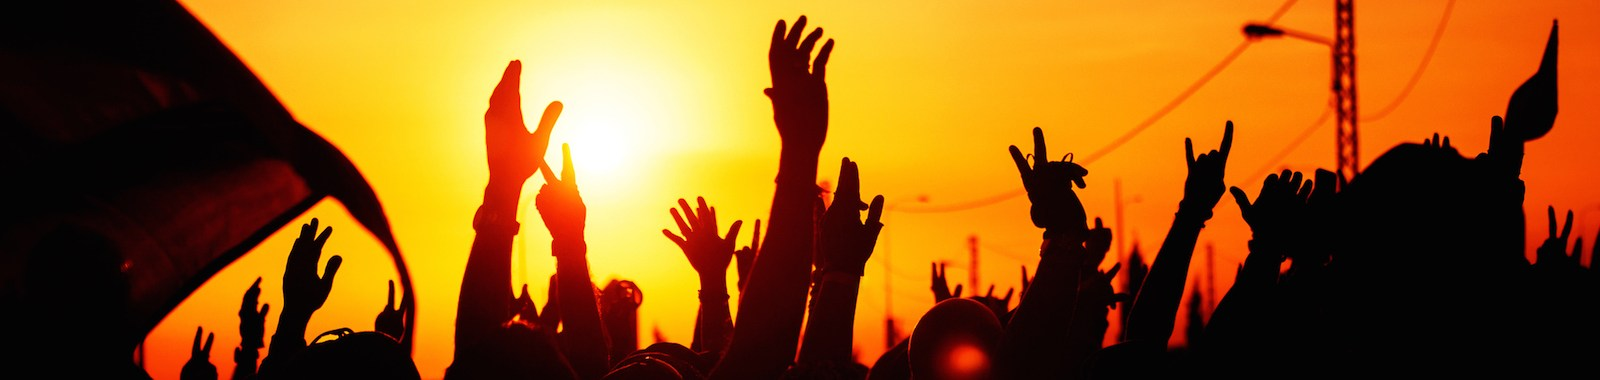 Revolution, people protest against government, man fighting for rights, silhouettes of hands up in the sky, threat of war